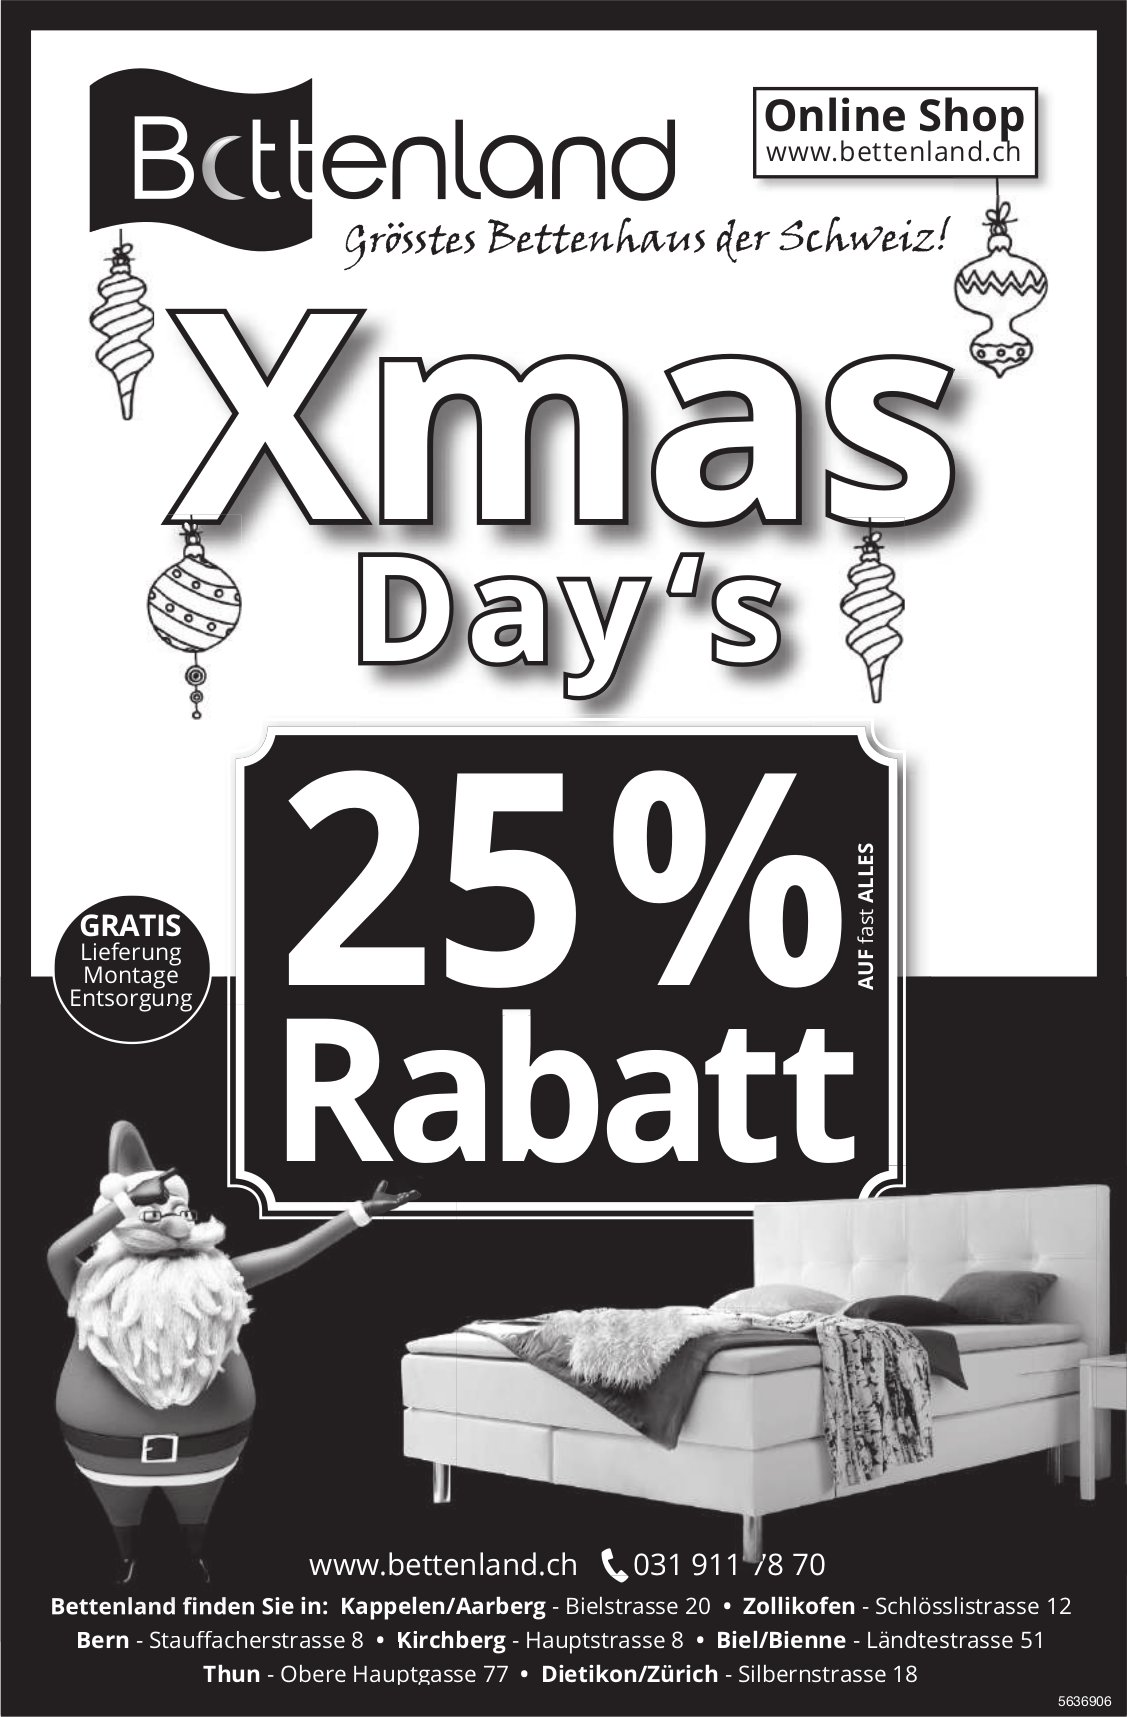 Bettenland - Xmas Day 's, 25% Rabatt